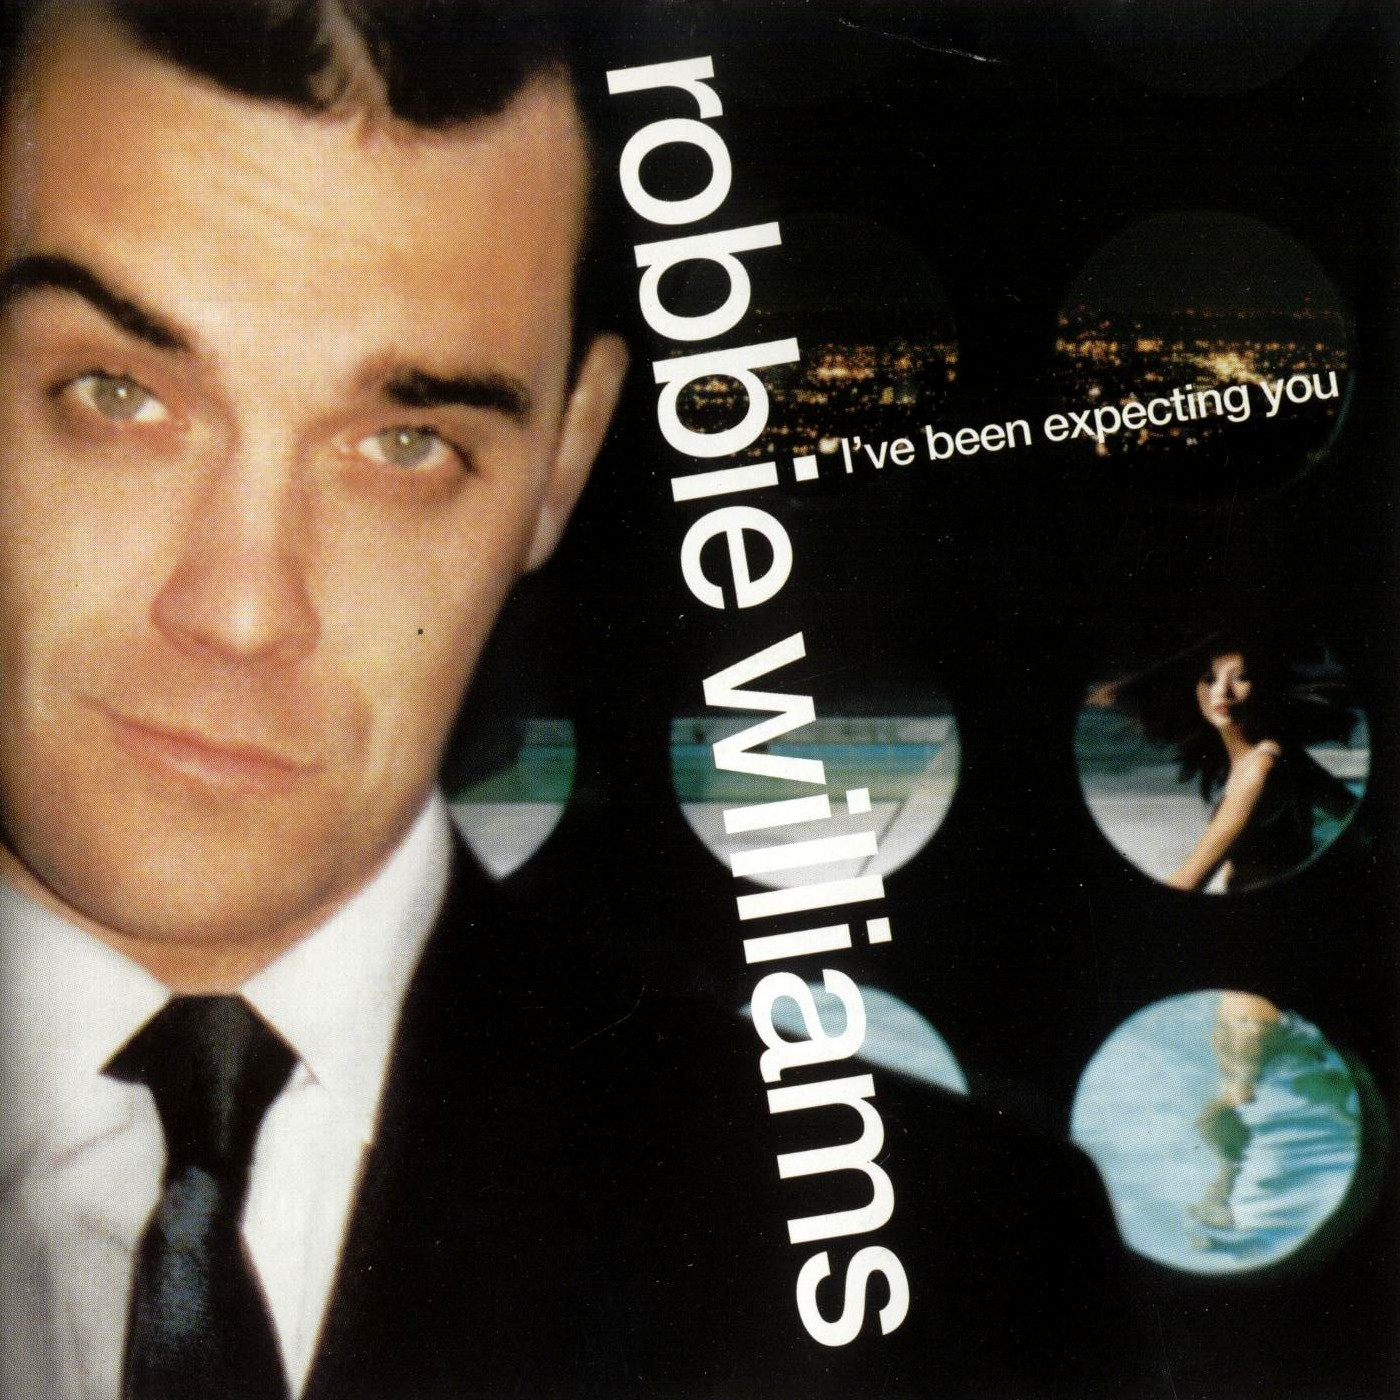 http://1.bp.blogspot.com/_KcZyZd0zaOk/SmBQuVLhe9I/AAAAAAAAA00/CZSRPCEeHLo/s1600/I\'ve+Been+Expecting+You+-+Robbie+Williams+(Front)+[1998].jpg